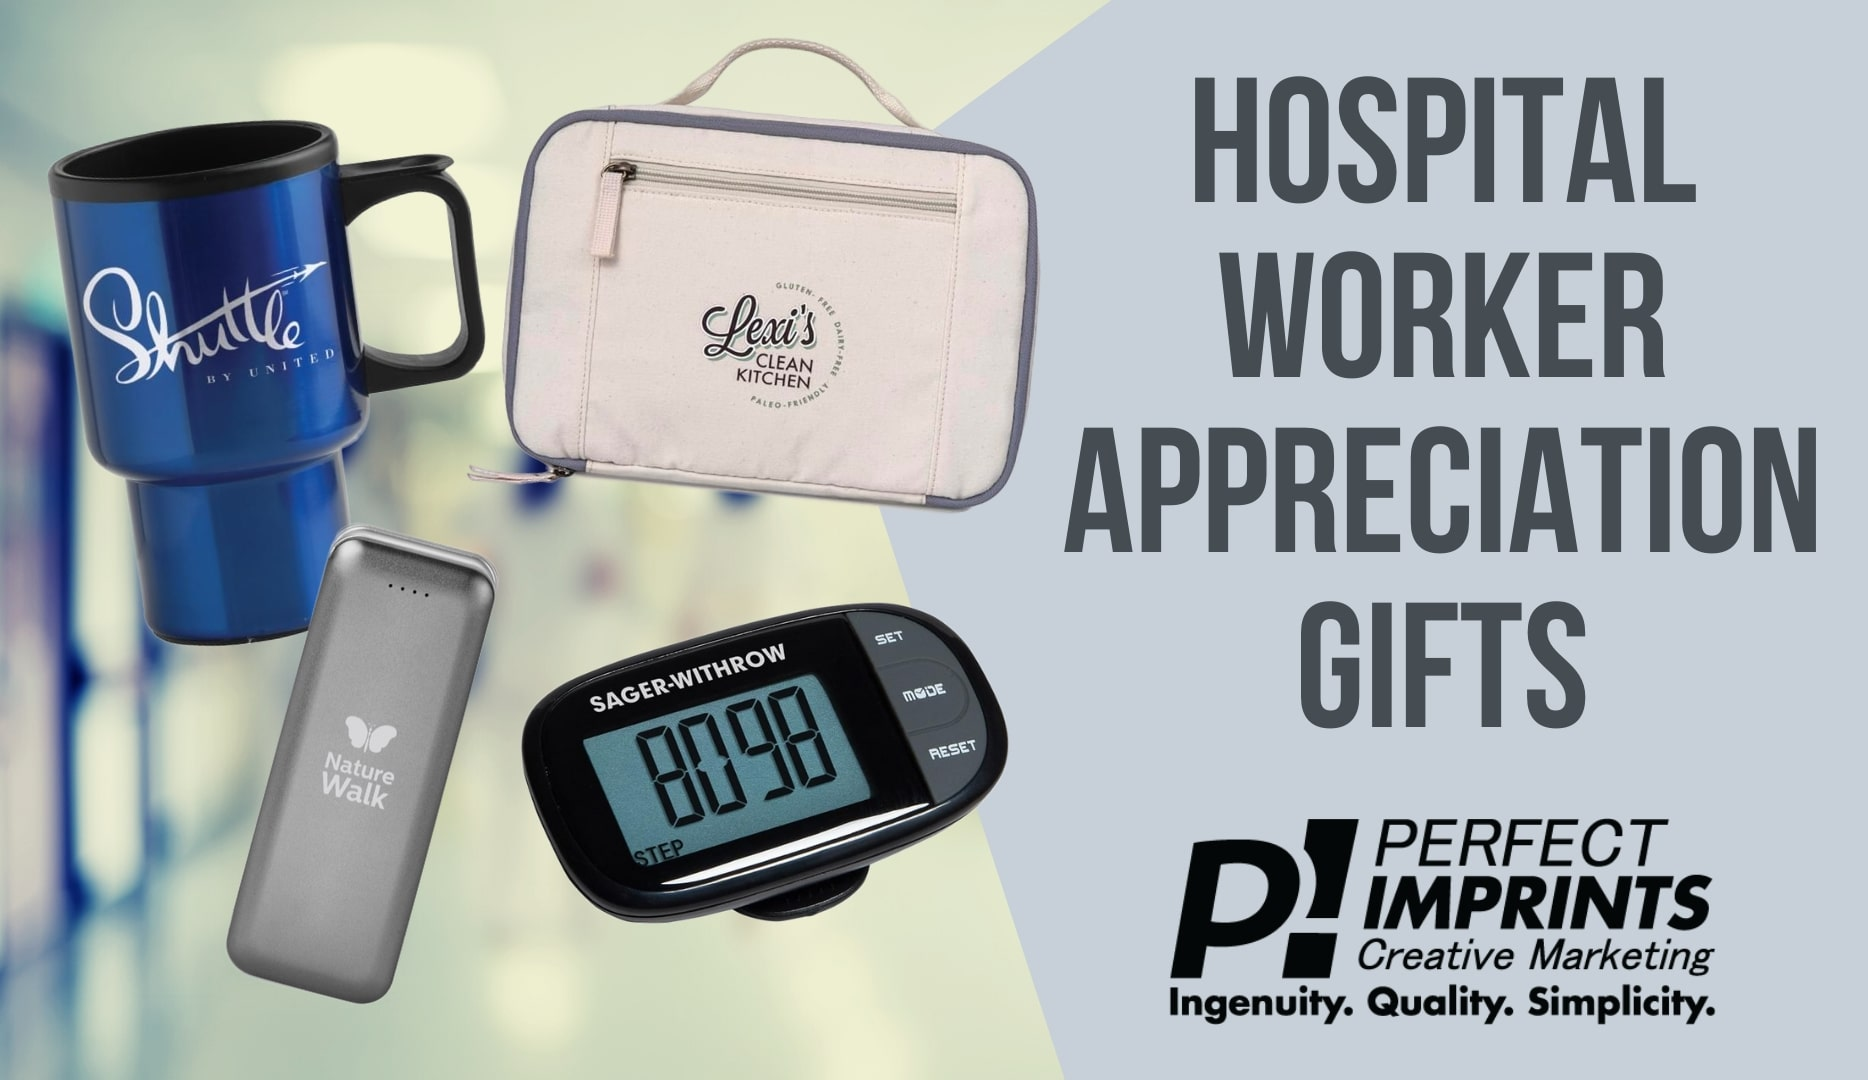 Gifts for Nurses and Hospital Workers